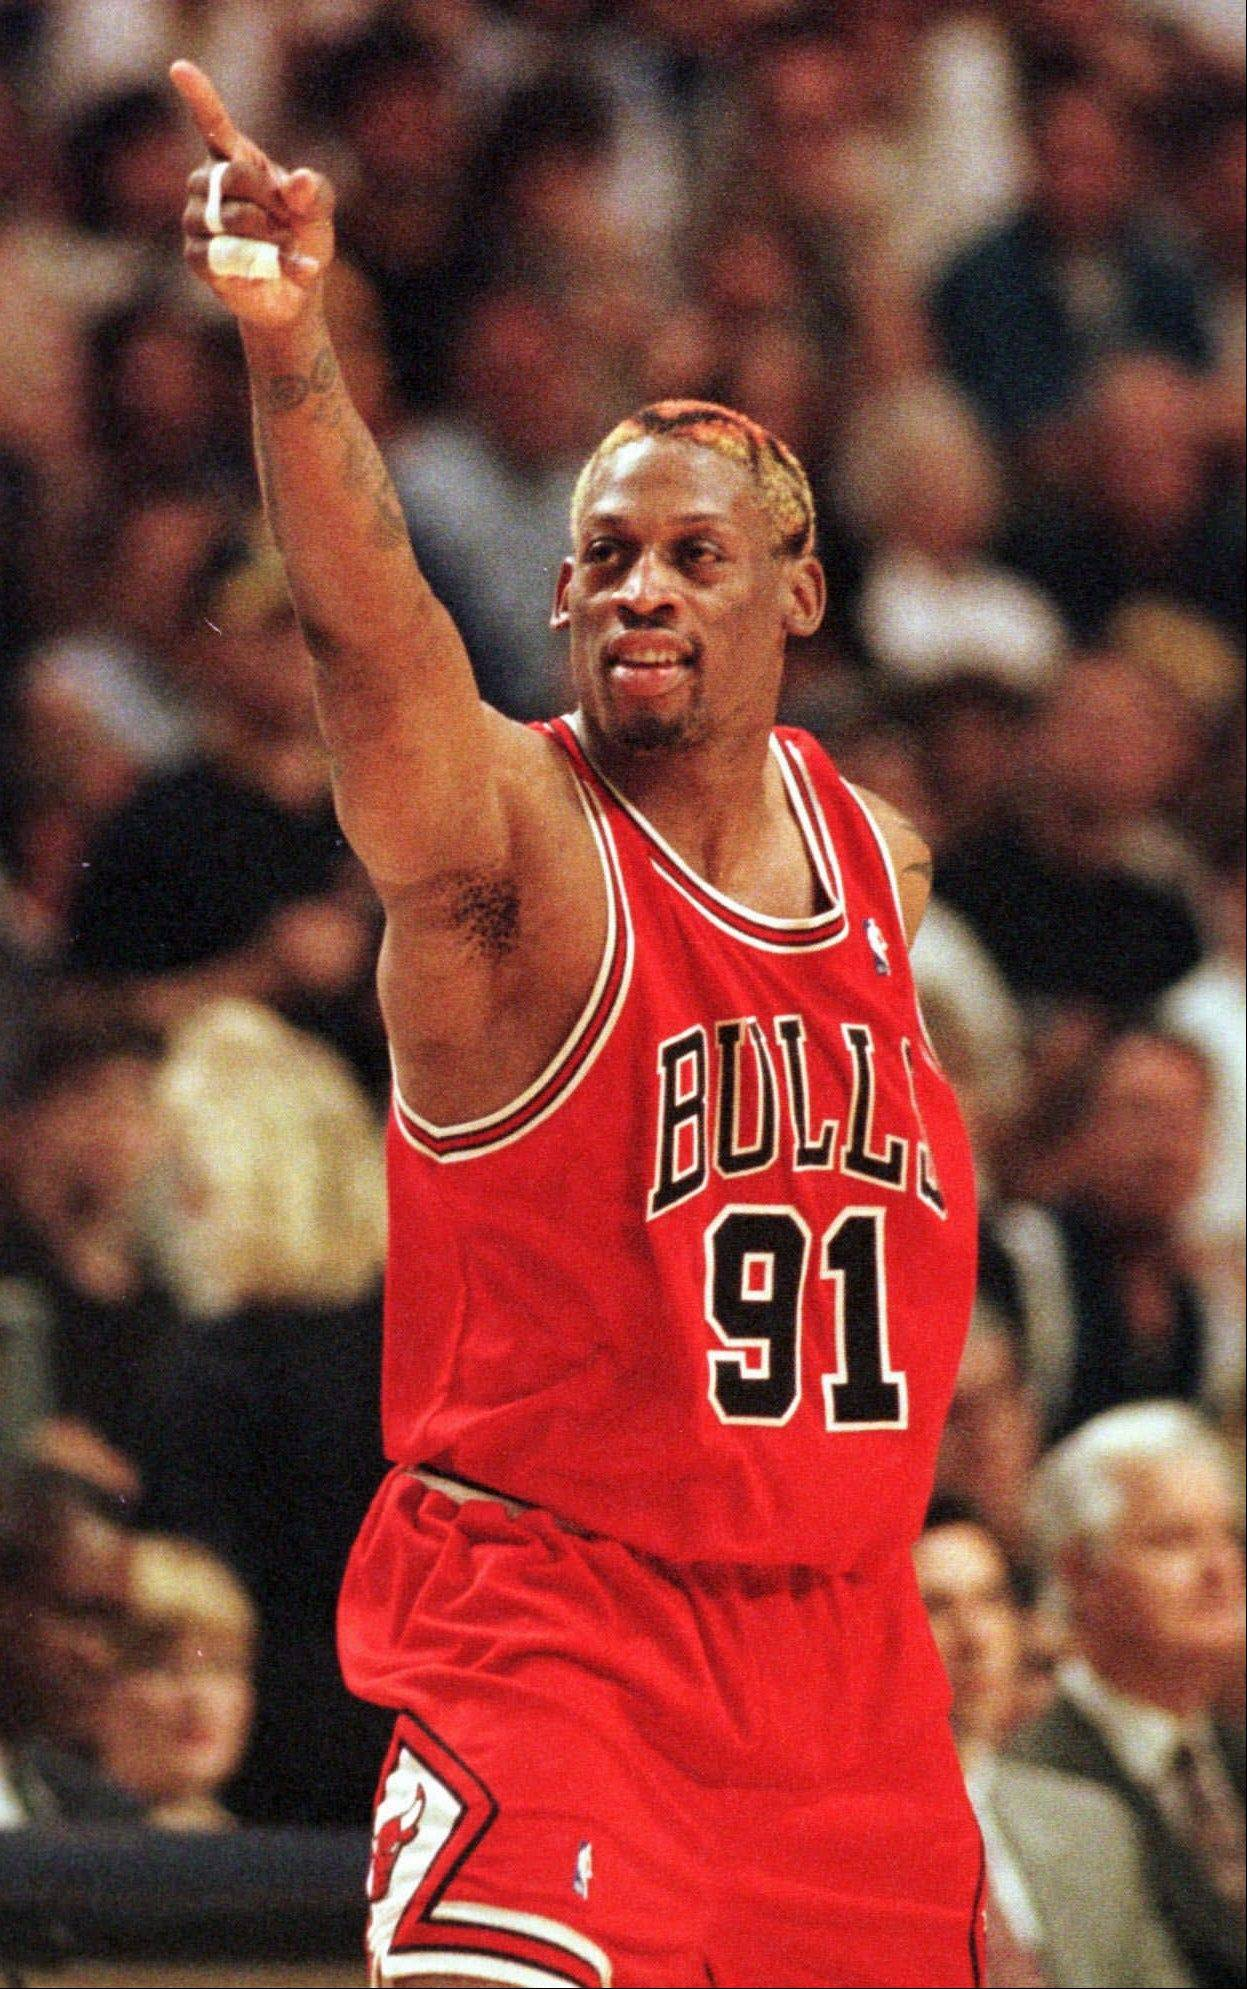 Chicago Bulls' Dennis Rodman points to the crowd during Game 4 of the Eastern Conference finals against the Indiana Pacers in Indianapolis, Monday, May 25, 1998. The Pacers beat the Bulls 96-94 to even the series at two games apiece.